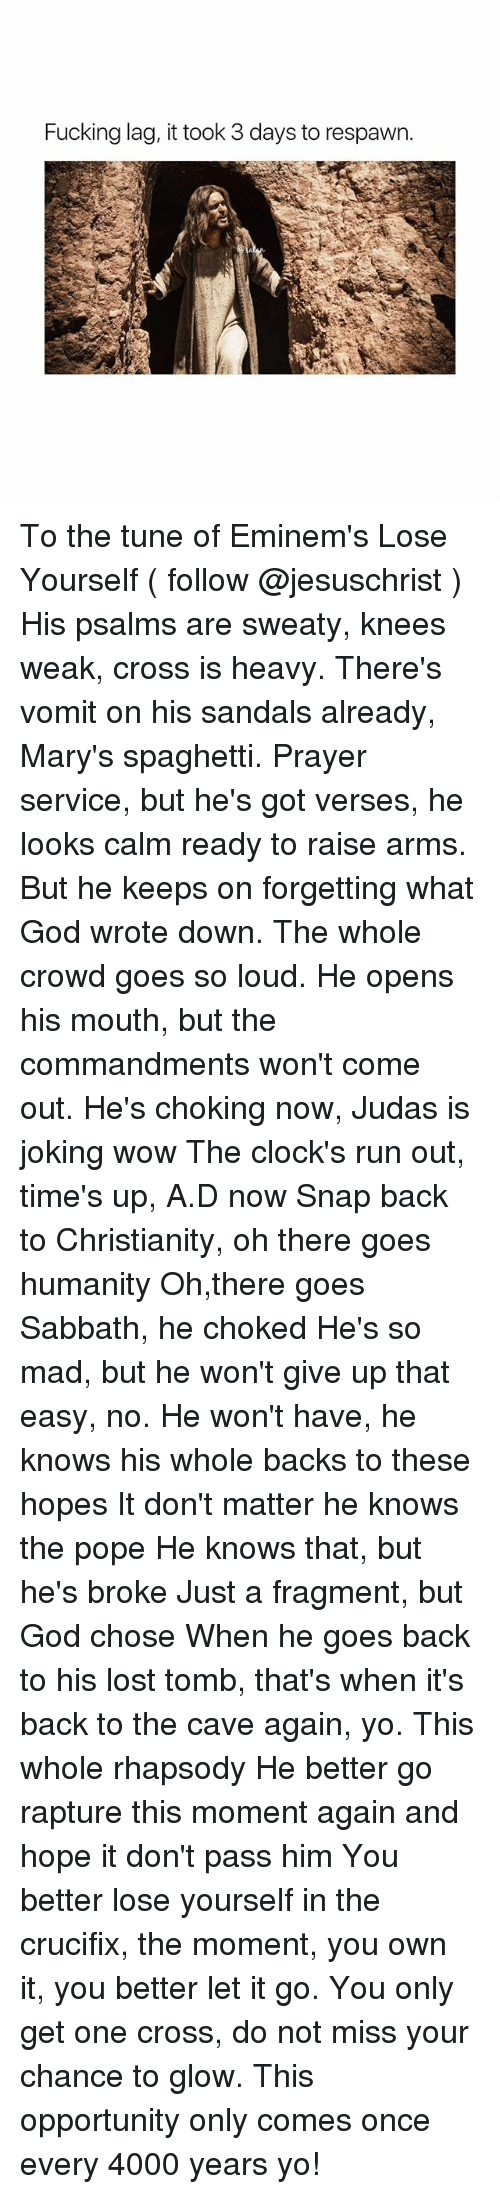 the cave: Fucking lag, it took 3 days to respawn To the tune of Eminem's Lose Yourself ( follow @jesuschrist ) His psalms are sweaty, knees weak, cross is heavy. There's vomit on his sandals already, Mary's spaghetti. Prayer service, but he's got verses, he looks calm ready to raise arms. But he keeps on forgetting what God wrote down. The whole crowd goes so loud. He opens his mouth, but the commandments won't come out. He's choking now, Judas is joking wow The clock's run out, time's up, A.D now Snap back to Christianity, oh there goes humanity Oh,there goes Sabbath, he choked He's so mad, but he won't give up that easy, no. He won't have, he knows his whole backs to these hopes It don't matter he knows the pope He knows that, but he's broke Just a fragment, but God chose When he goes back to his lost tomb, that's when it's back to the cave again, yo. This whole rhapsody He better go rapture this moment again and hope it don't pass him You better lose yourself in the crucifix, the moment, you own it, you better let it go. You only get one cross, do not miss your chance to glow. This opportunity only comes once every 4000 years yo!